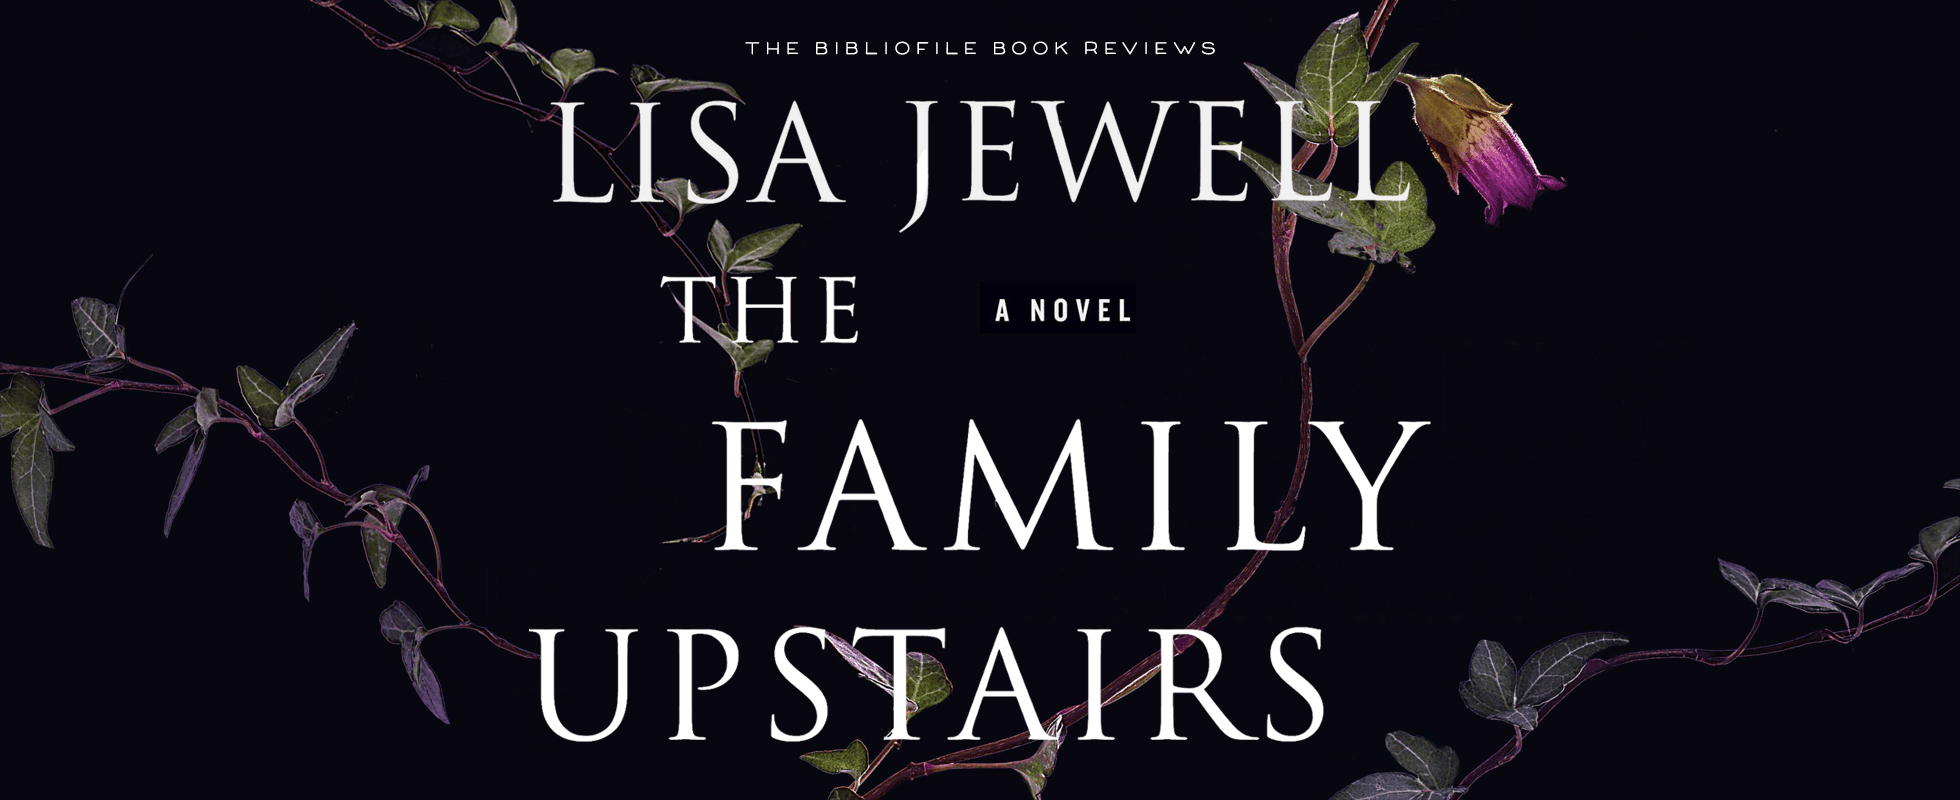 The Family Upstairs by Lisa Jewell Review and Summary Synopsis Spoilers Ending